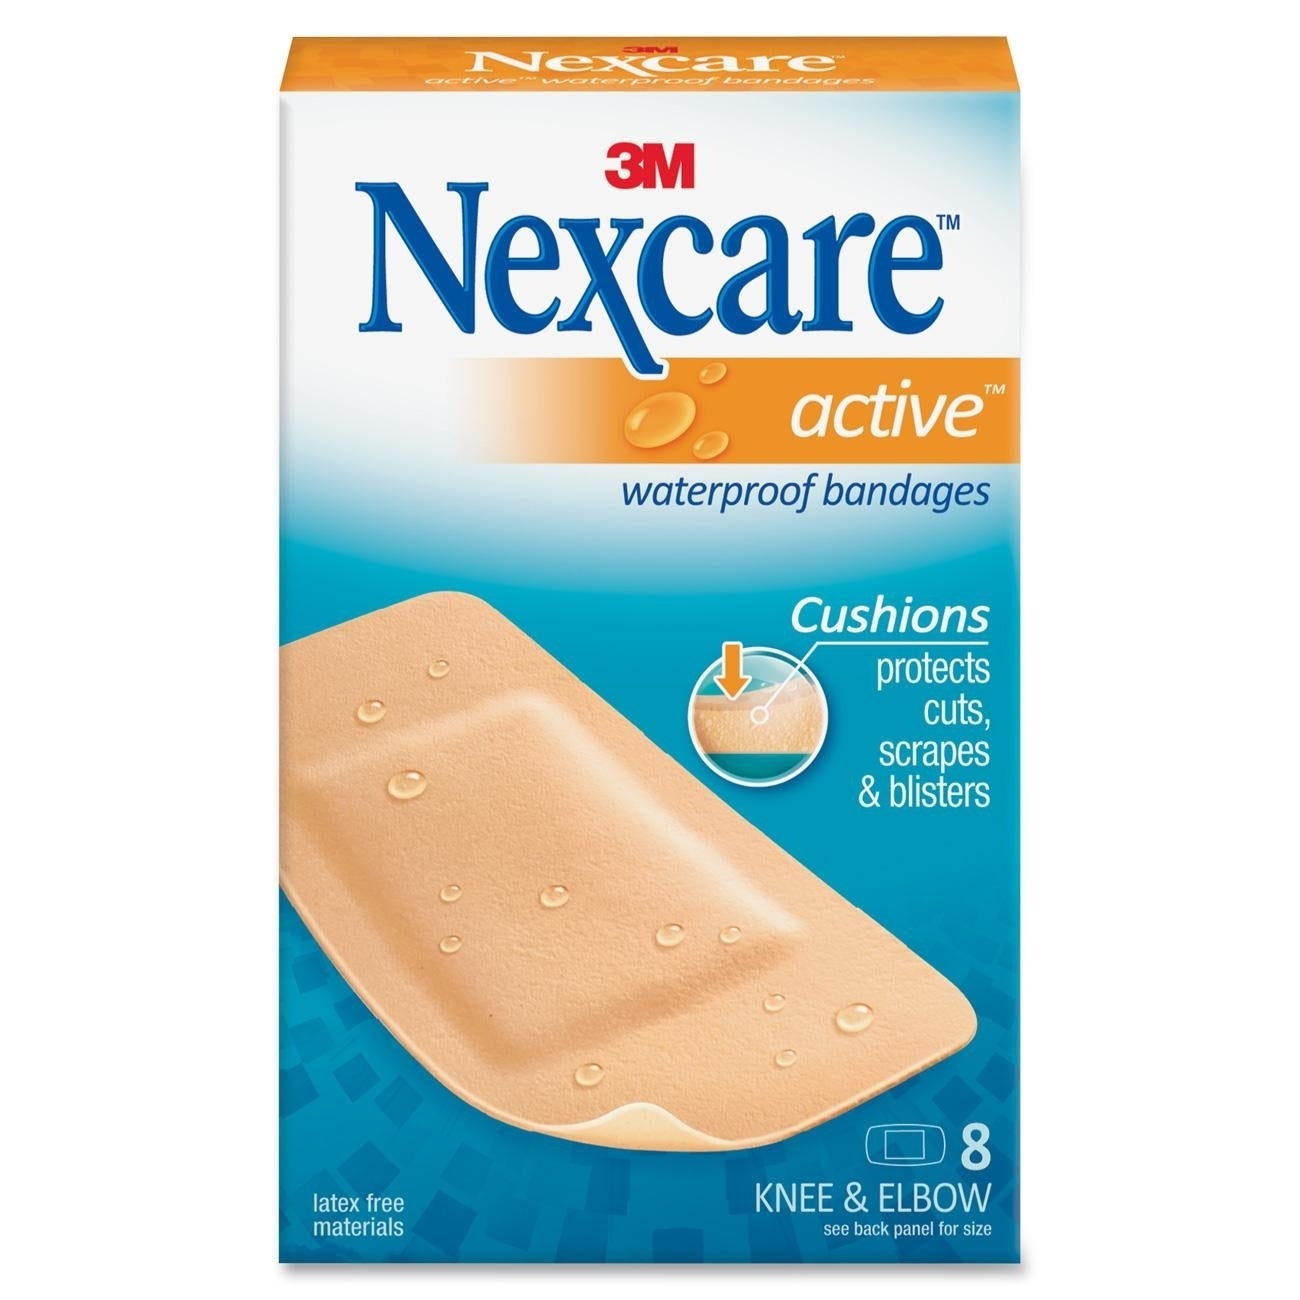 3M Nexcare Extra Cushion Knee/ Elbow Bandages (MMM51108)